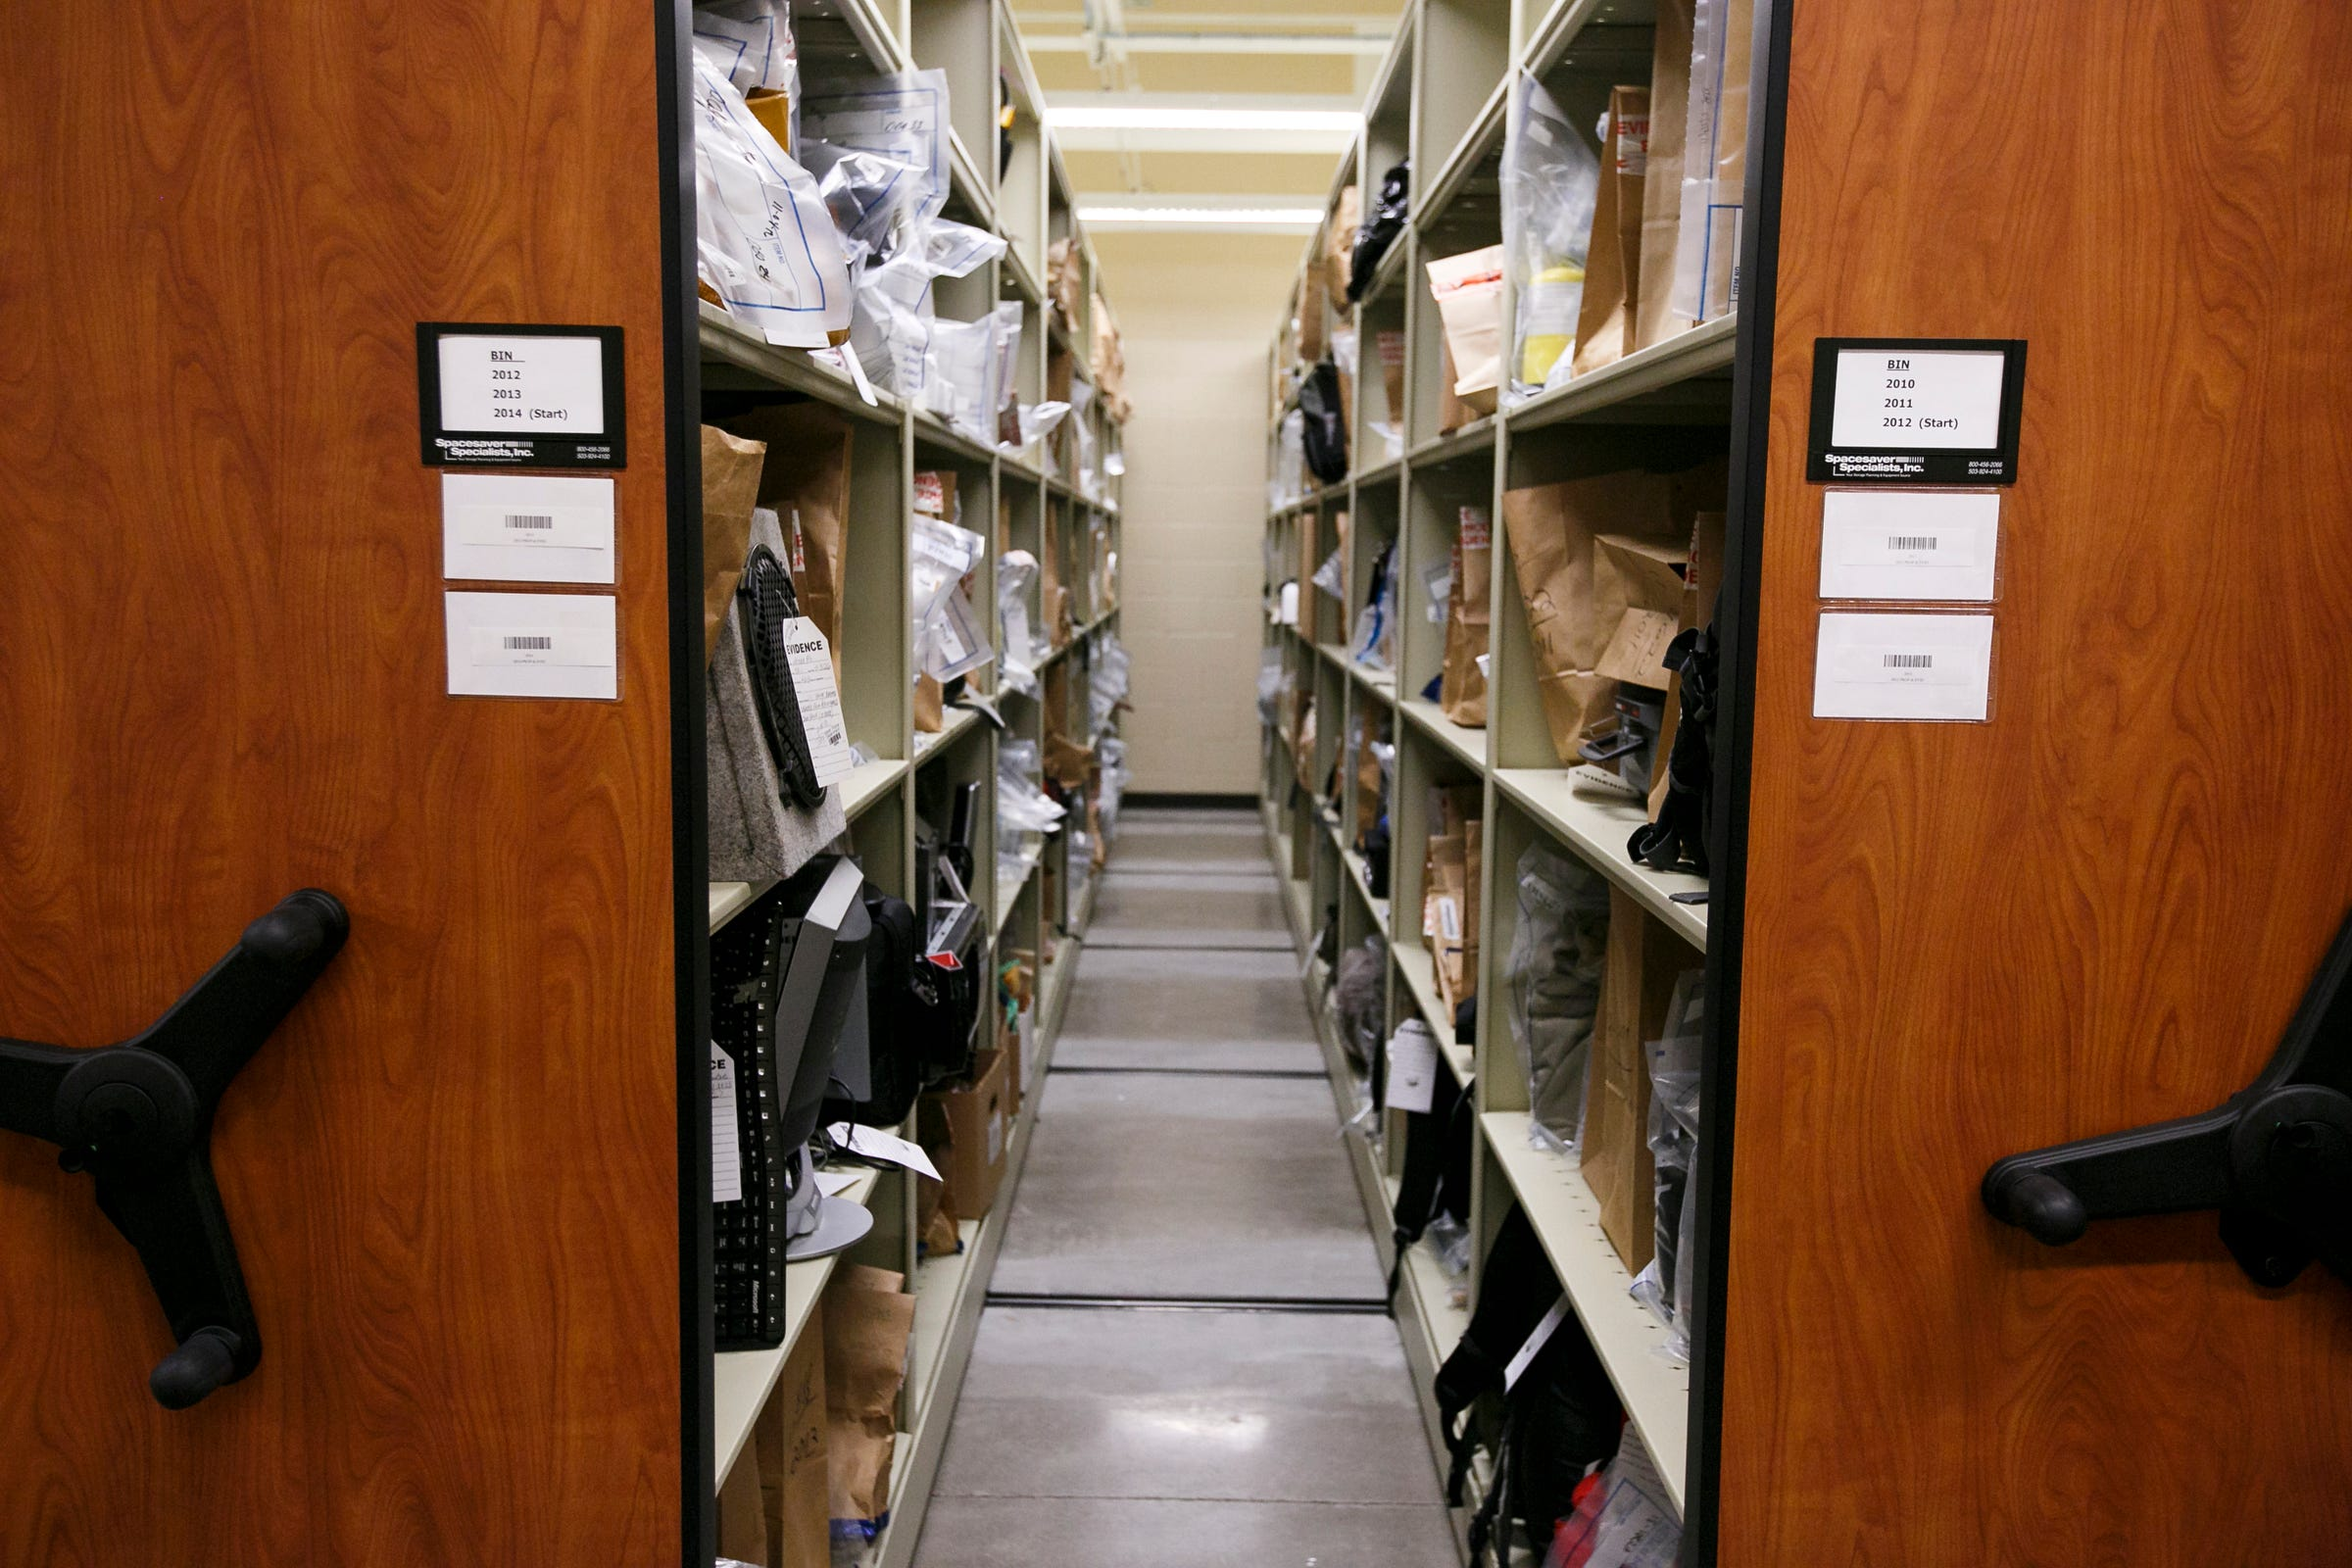 The Evidence Storage Room At The Keizer Police Department,